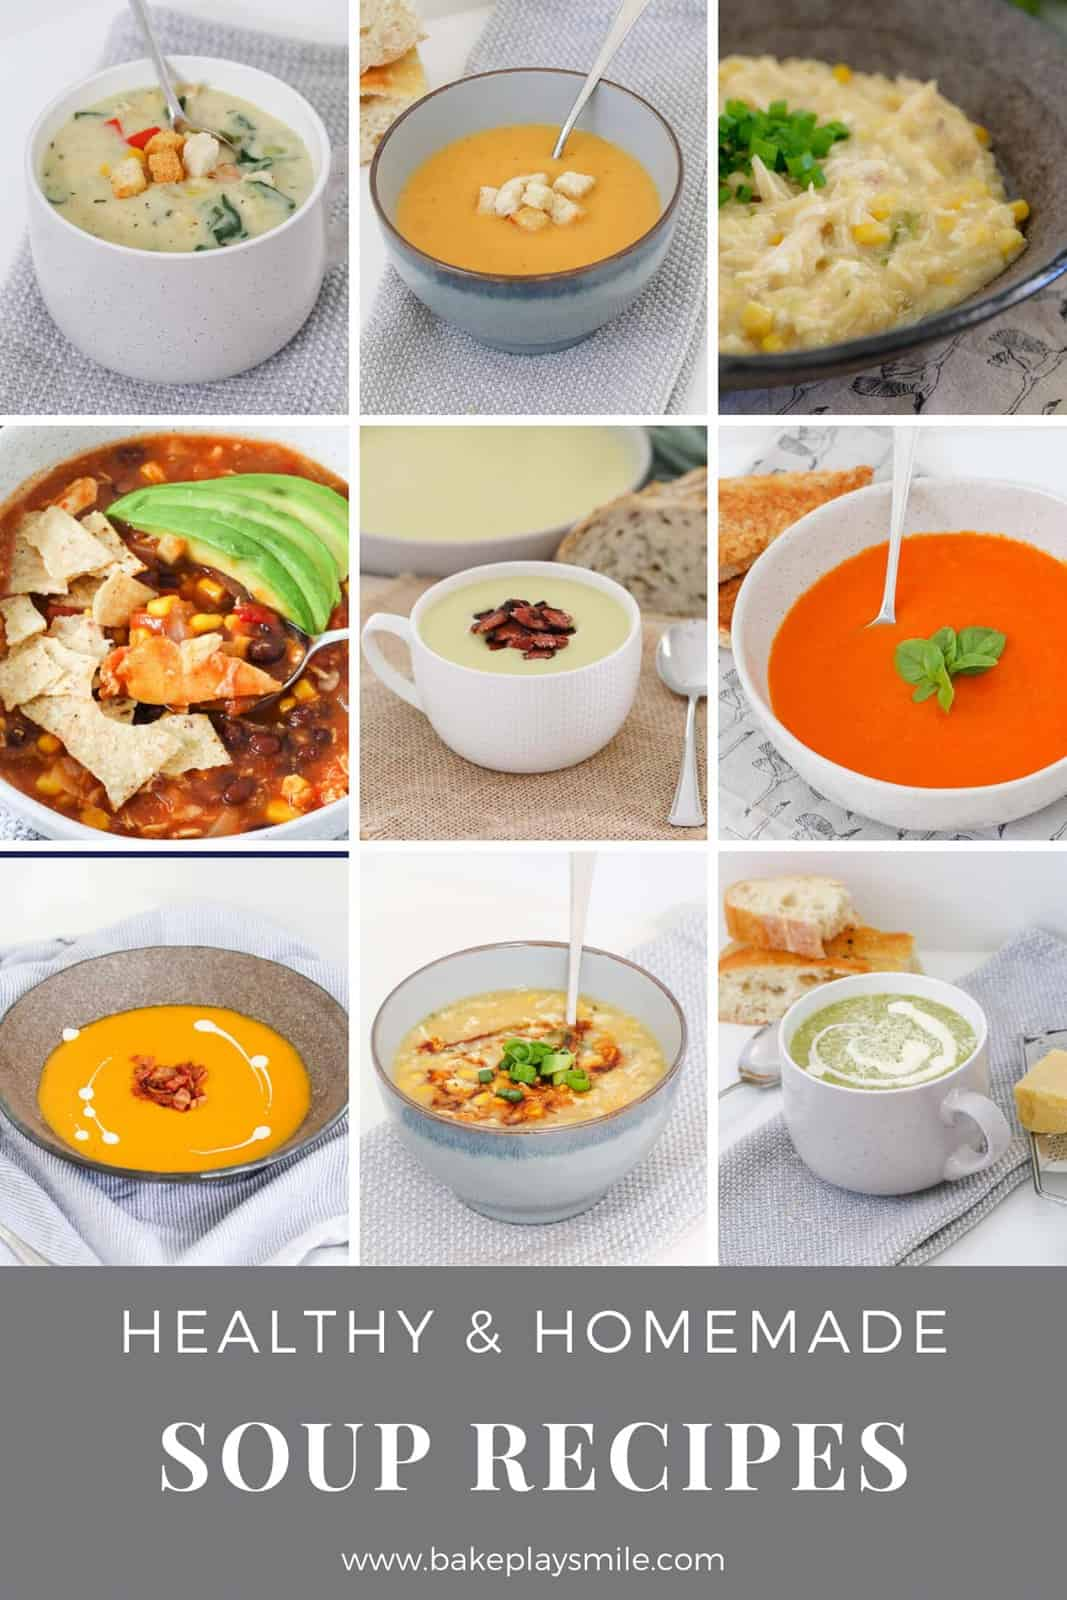 A collage of healthy homemade winter soup recipes.